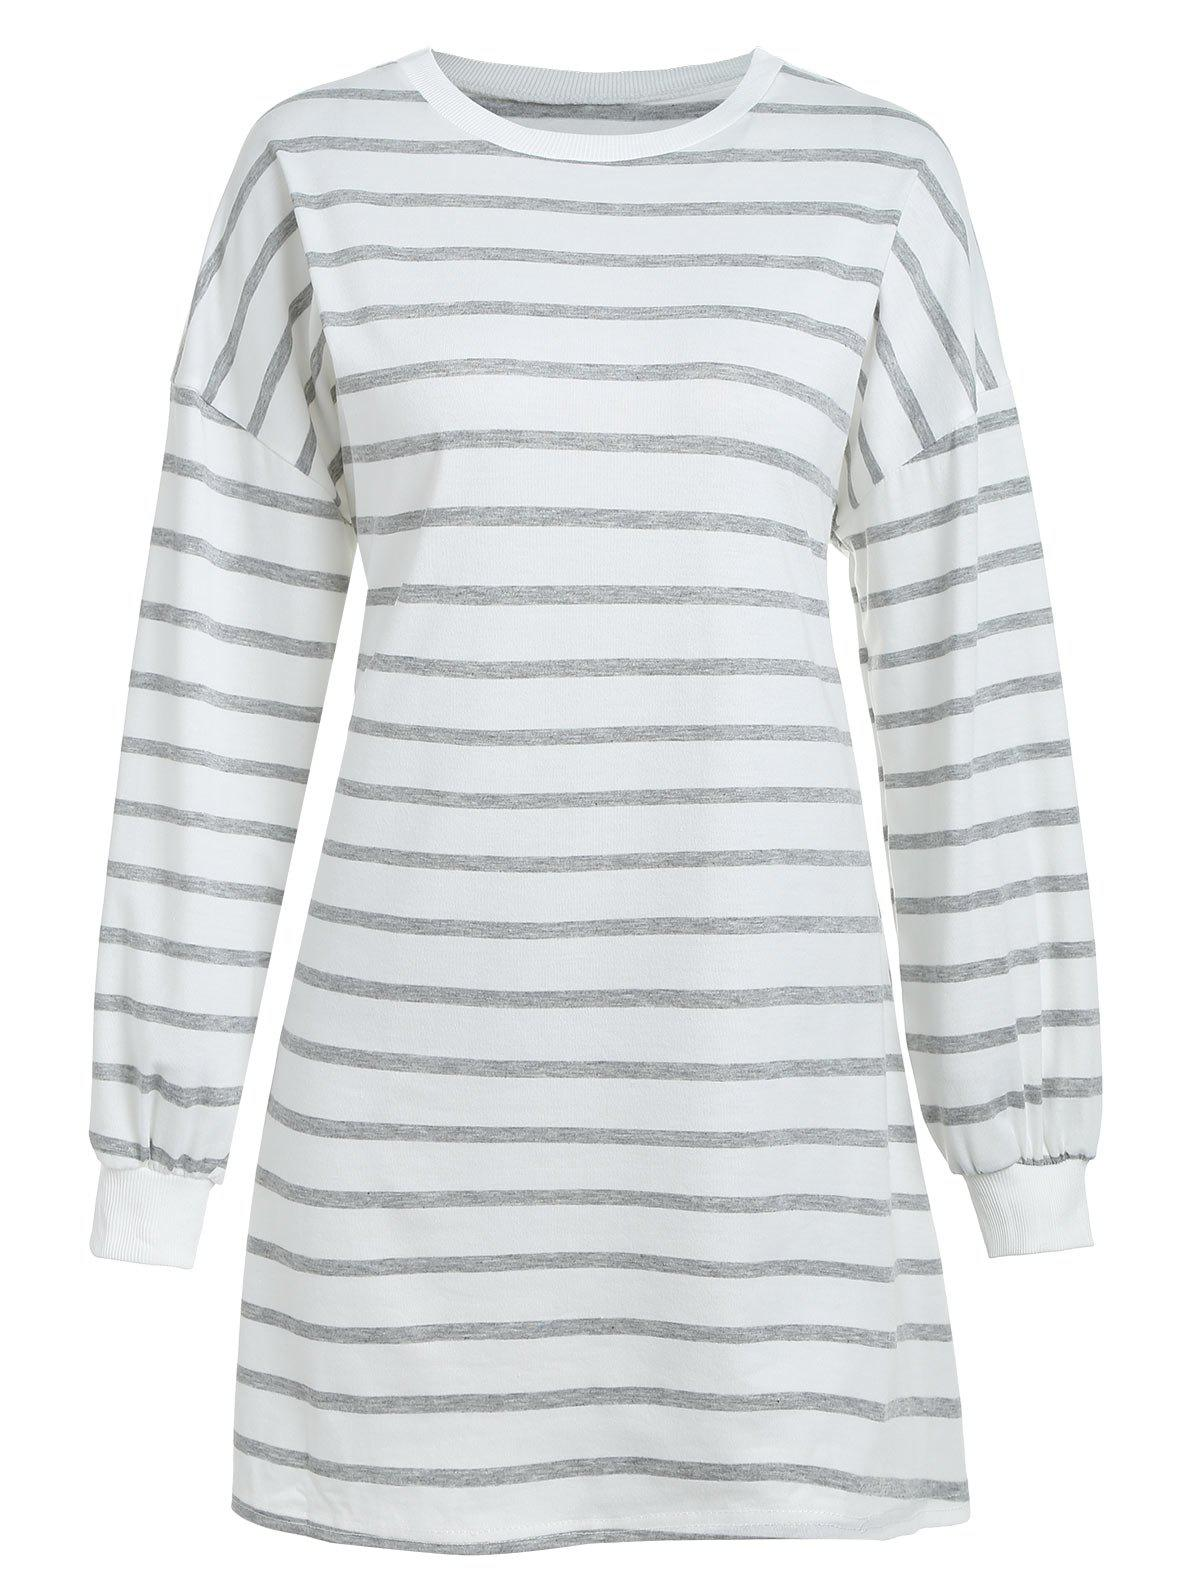 Cheap Striped Tee Dress with Drop Shoulder